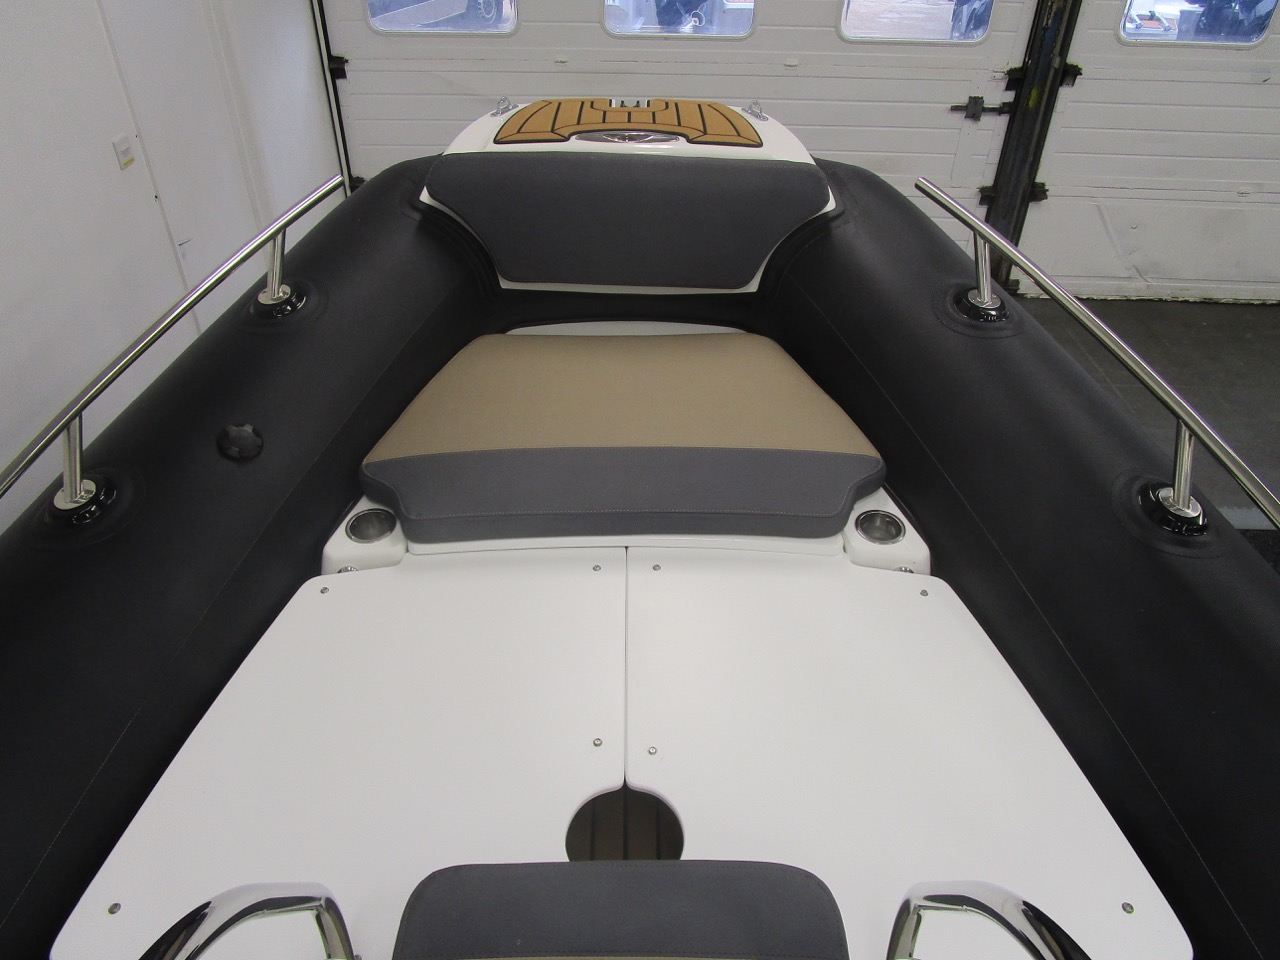 Grand RIB Golden Line G650 port & stbd sundeck fitted